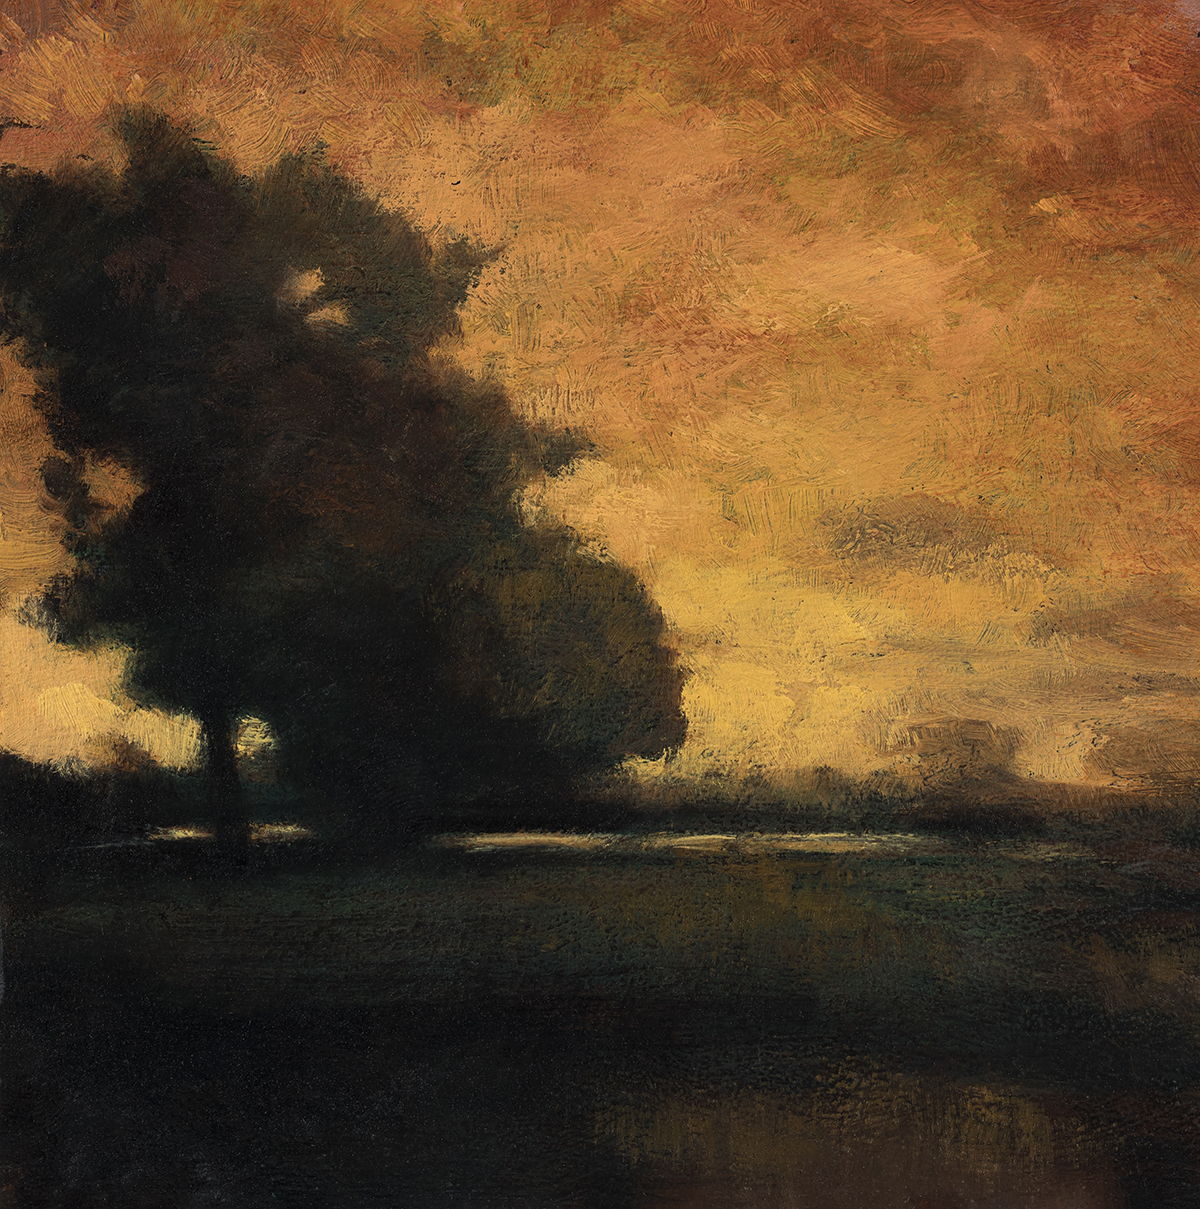 Study after: George Inness - Sunset at Milto by M Francis McCarthy - 5x7 Oil on Wood Panel